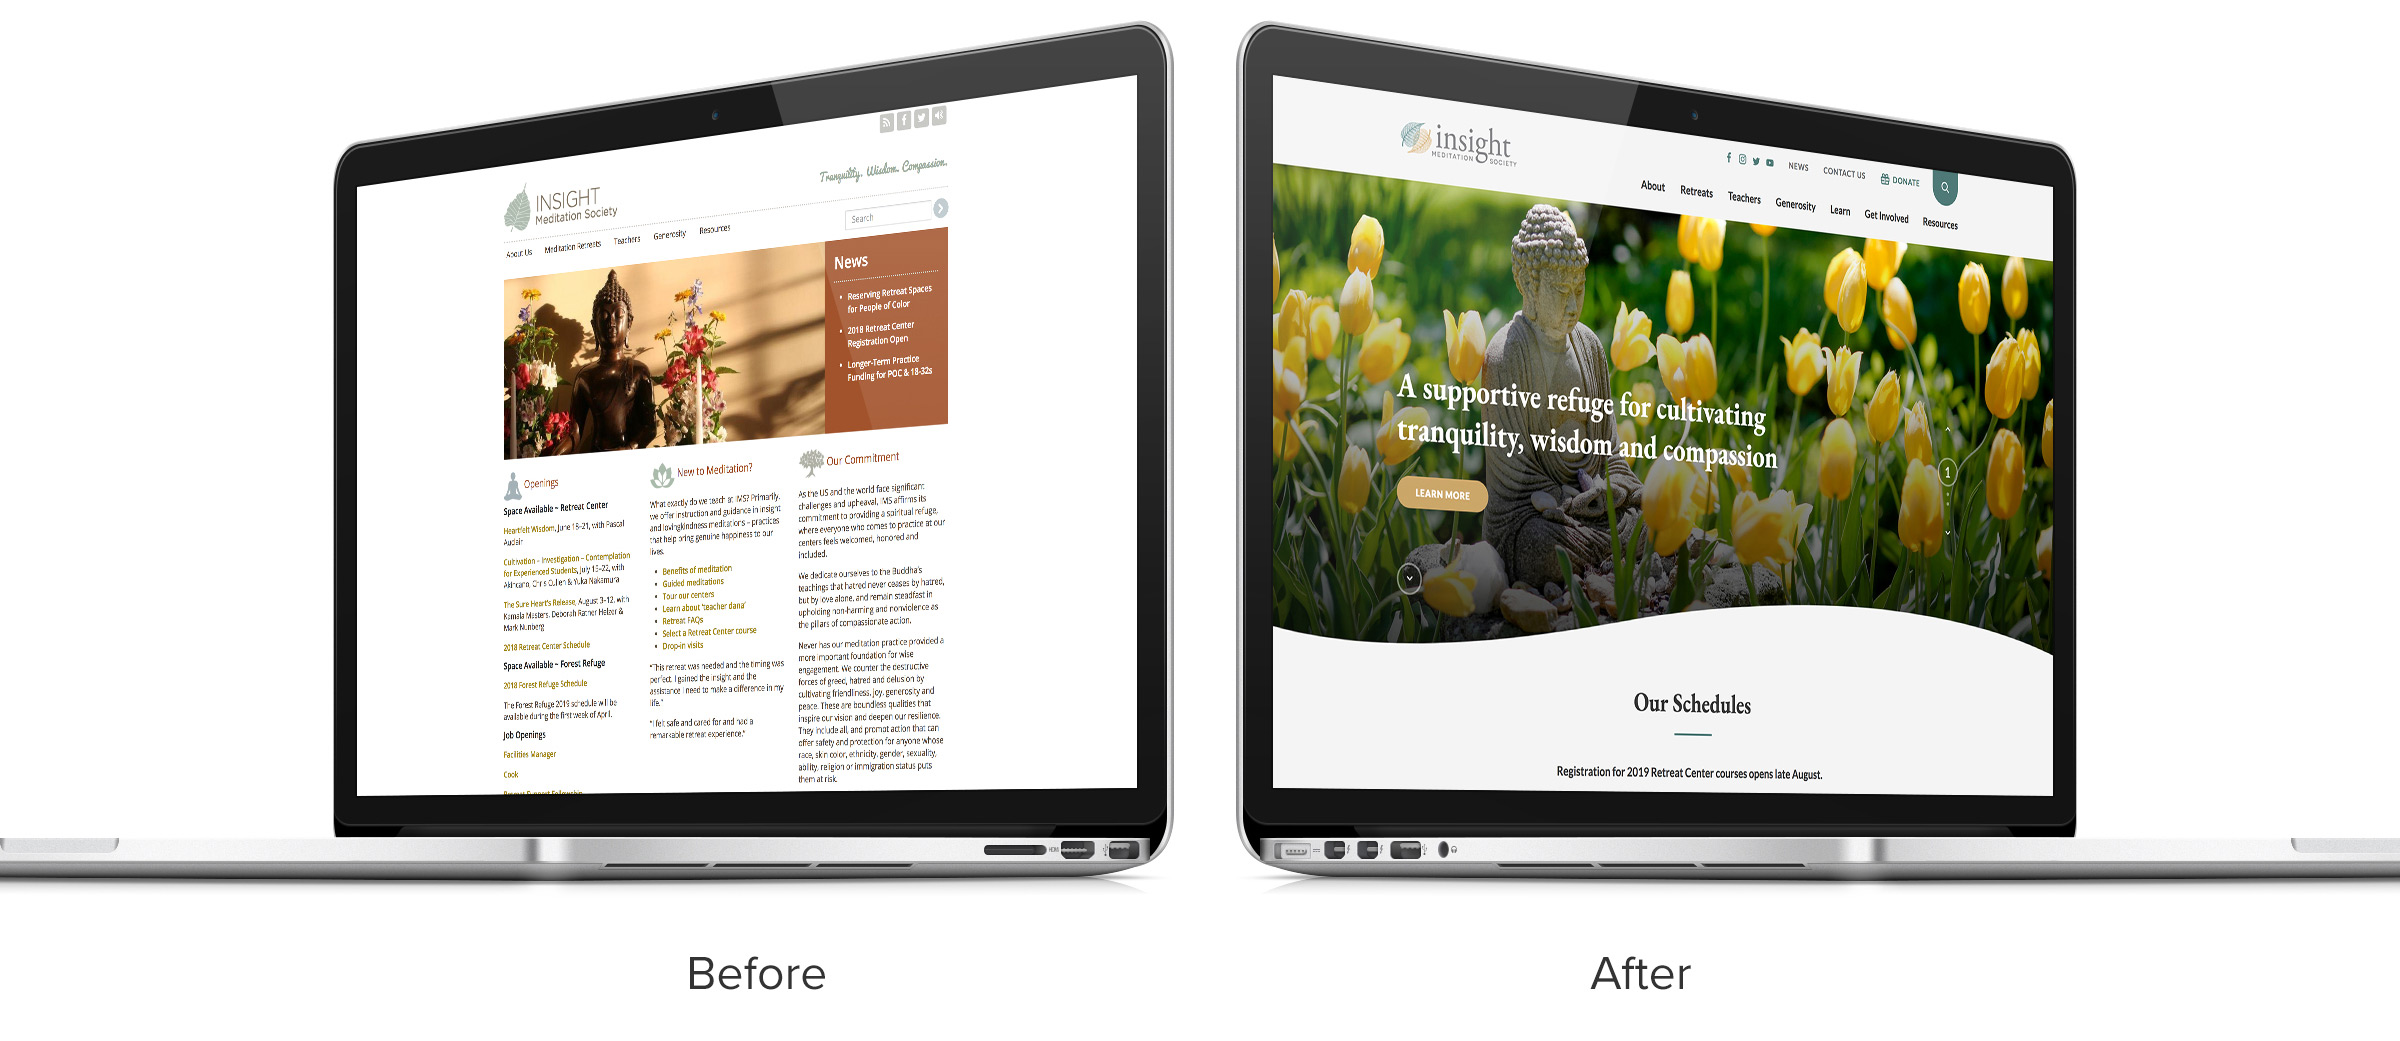 Insight Meditation Society website – before and after comparison